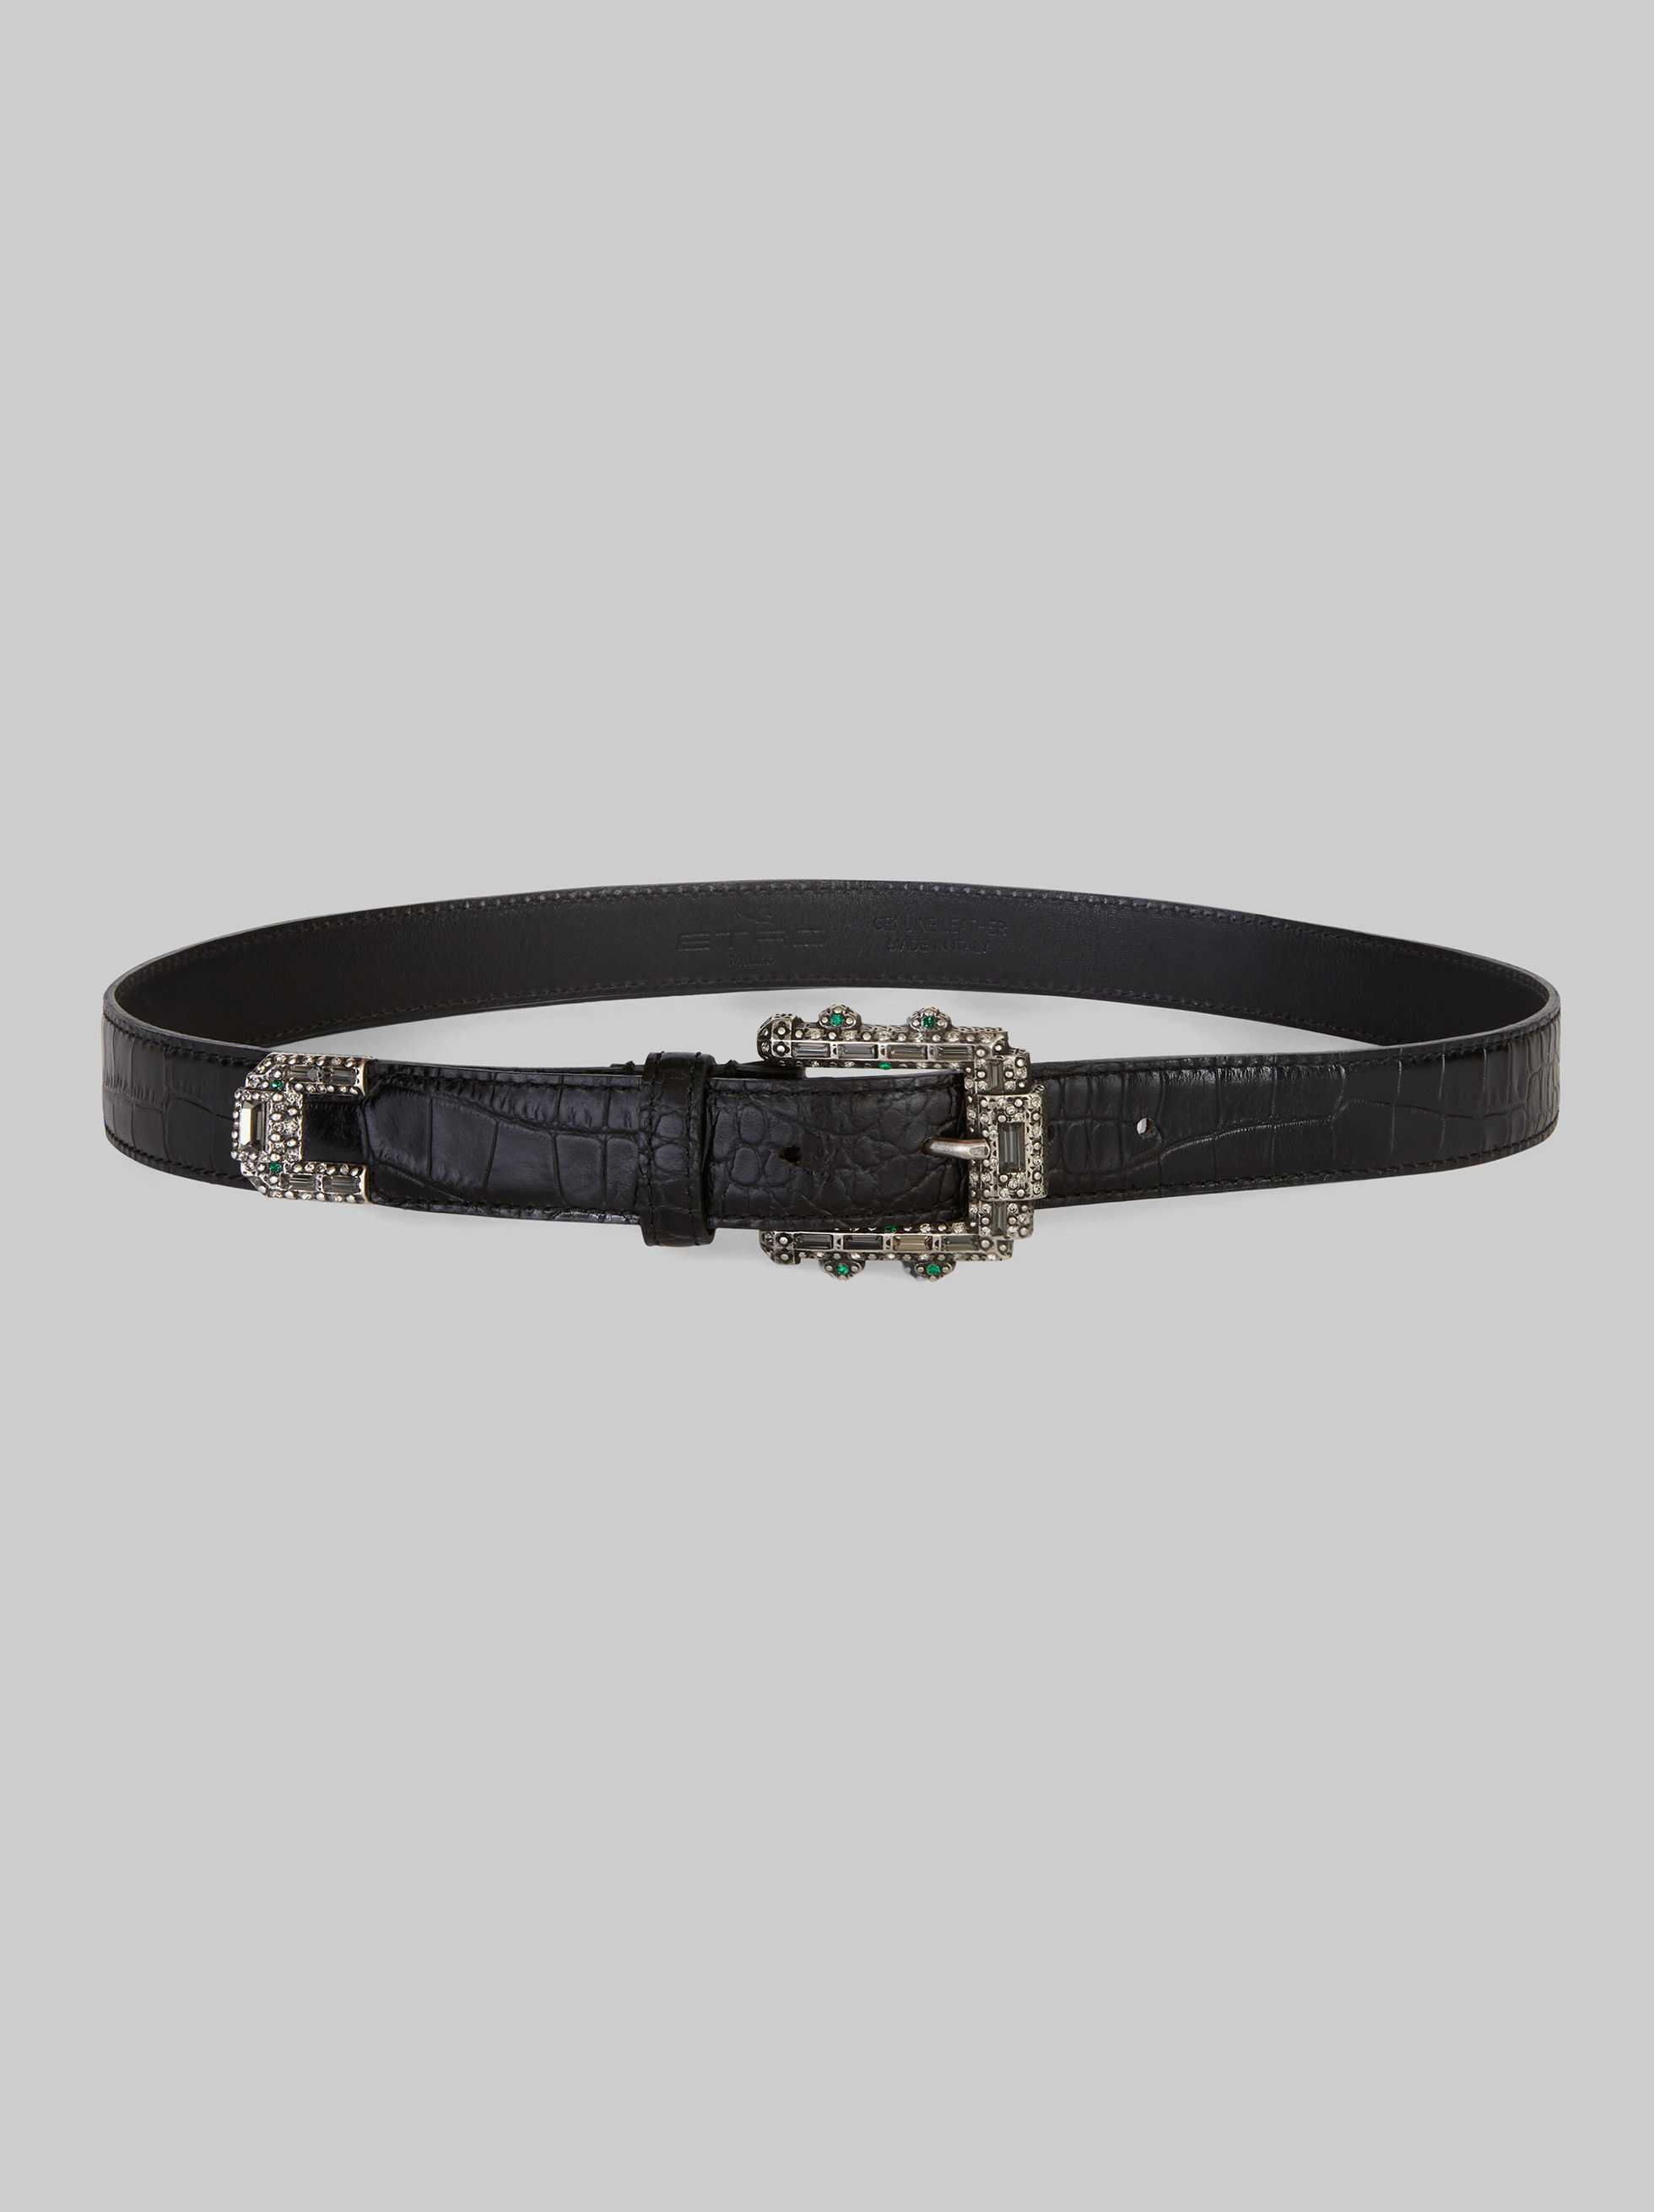 CROCODILE PRINT LEATHER BELT